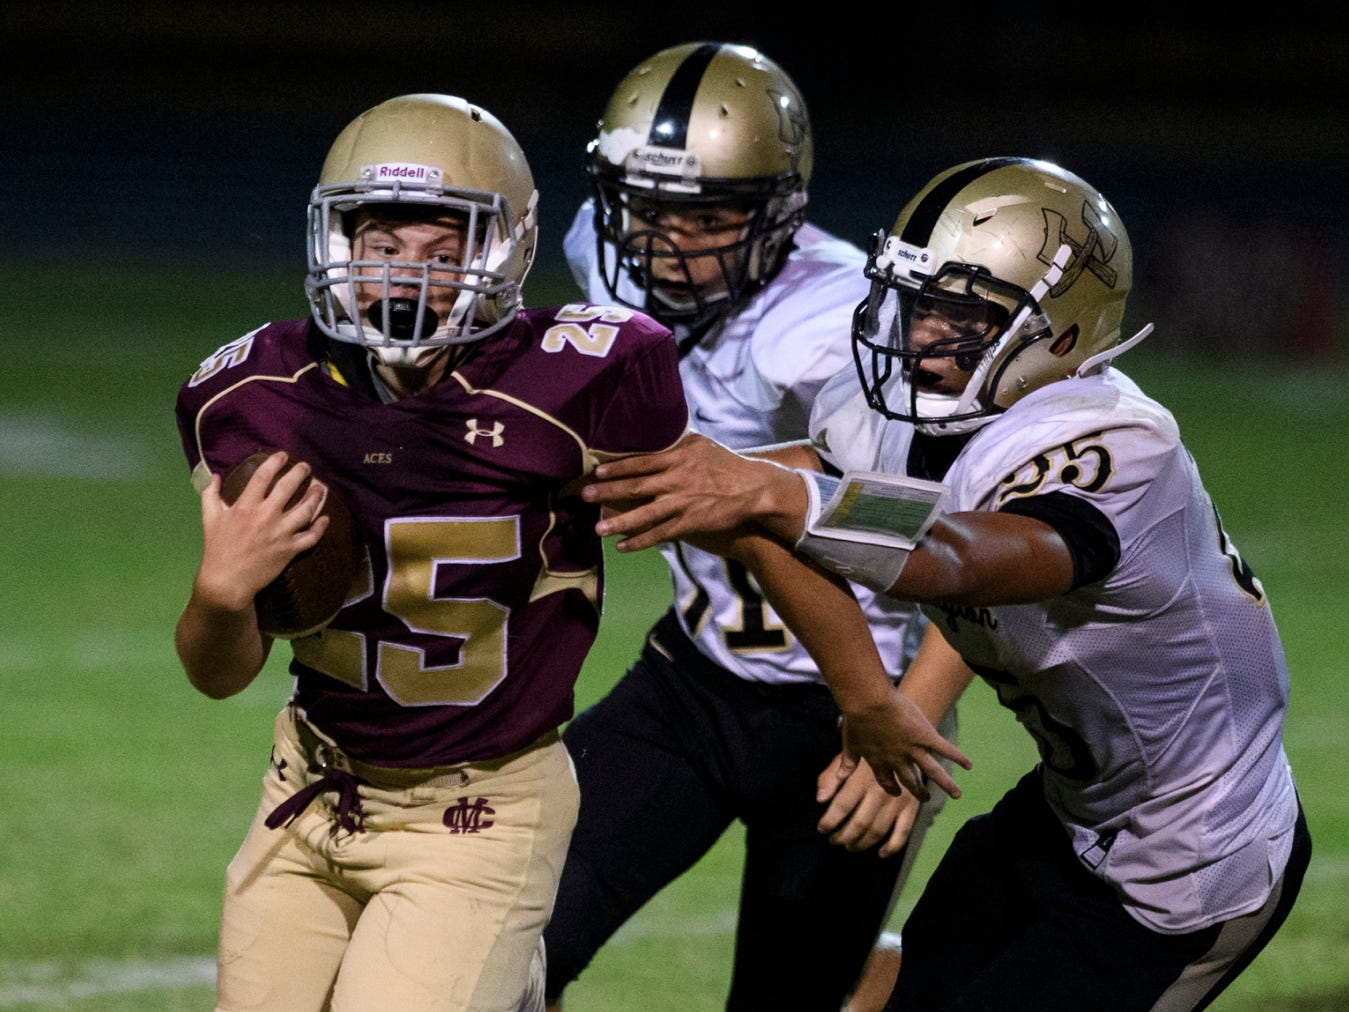 Mount Carmel's Dirk Kight (25) runs past Washington defensemen Will Lamb (51) and Julius Hardiman (25) during a Homecoming game at Riverview Stadium, known as the Snake Pit, in Mount Carmel, Ill., Friday, Sept. 21, 2018. The Golden Aces defeated the Hatchets 61-20.